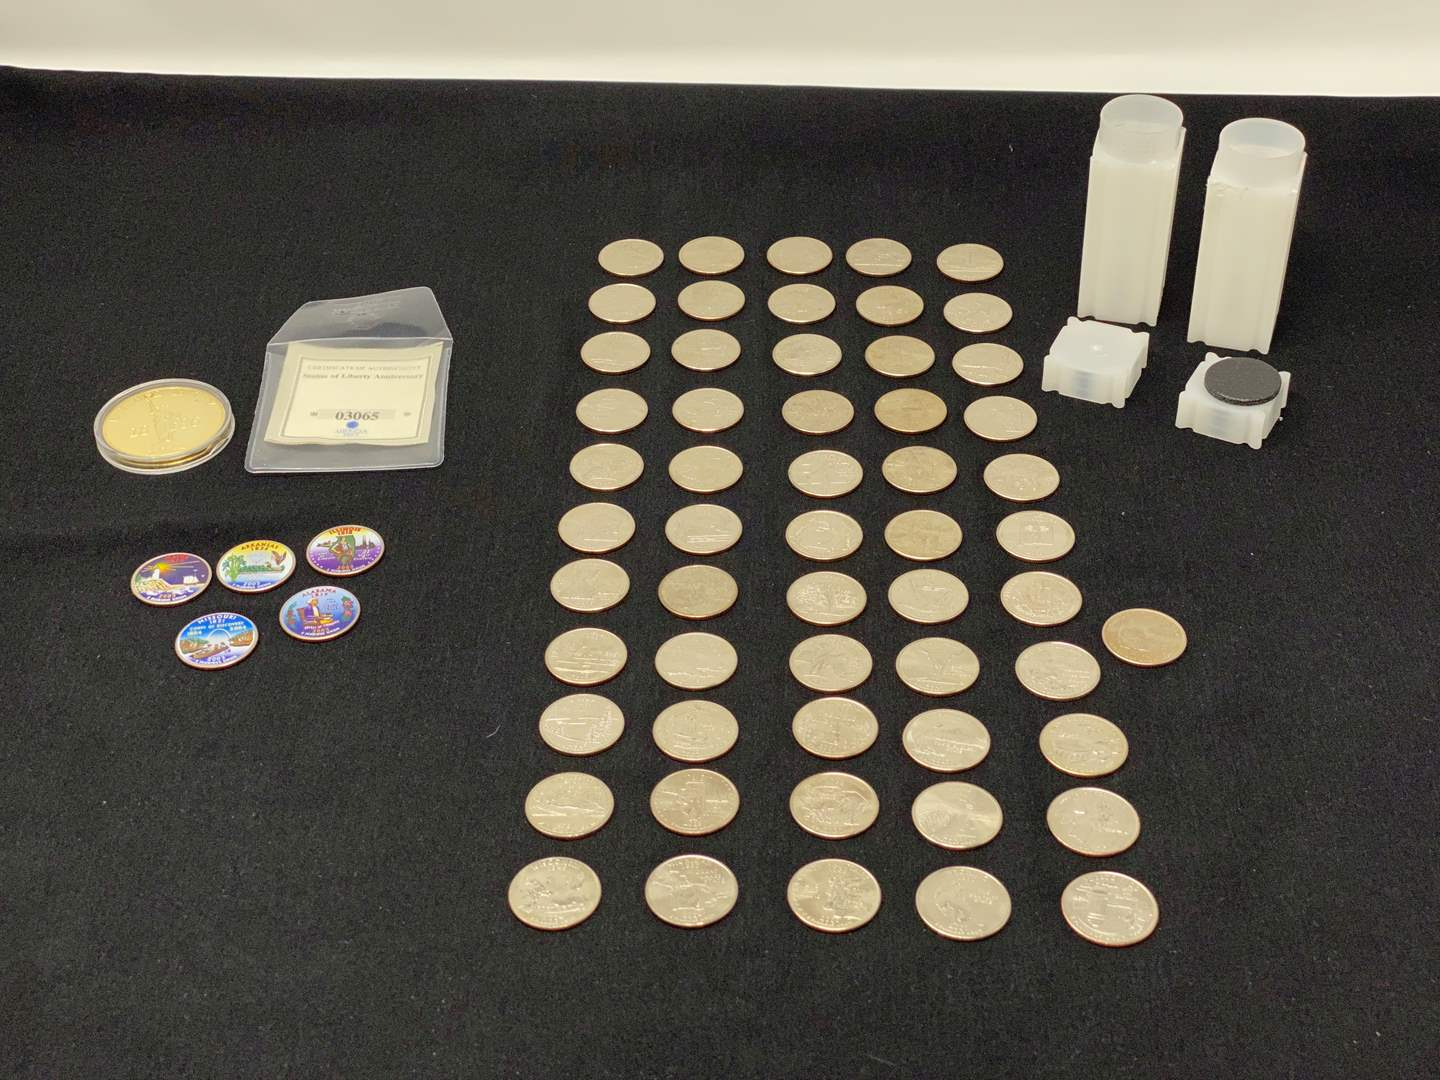 Lot # 81 - Uncirculated 55-State Quarters, Five Colored State Quarters, Statue of Liberty Proof. (main image)